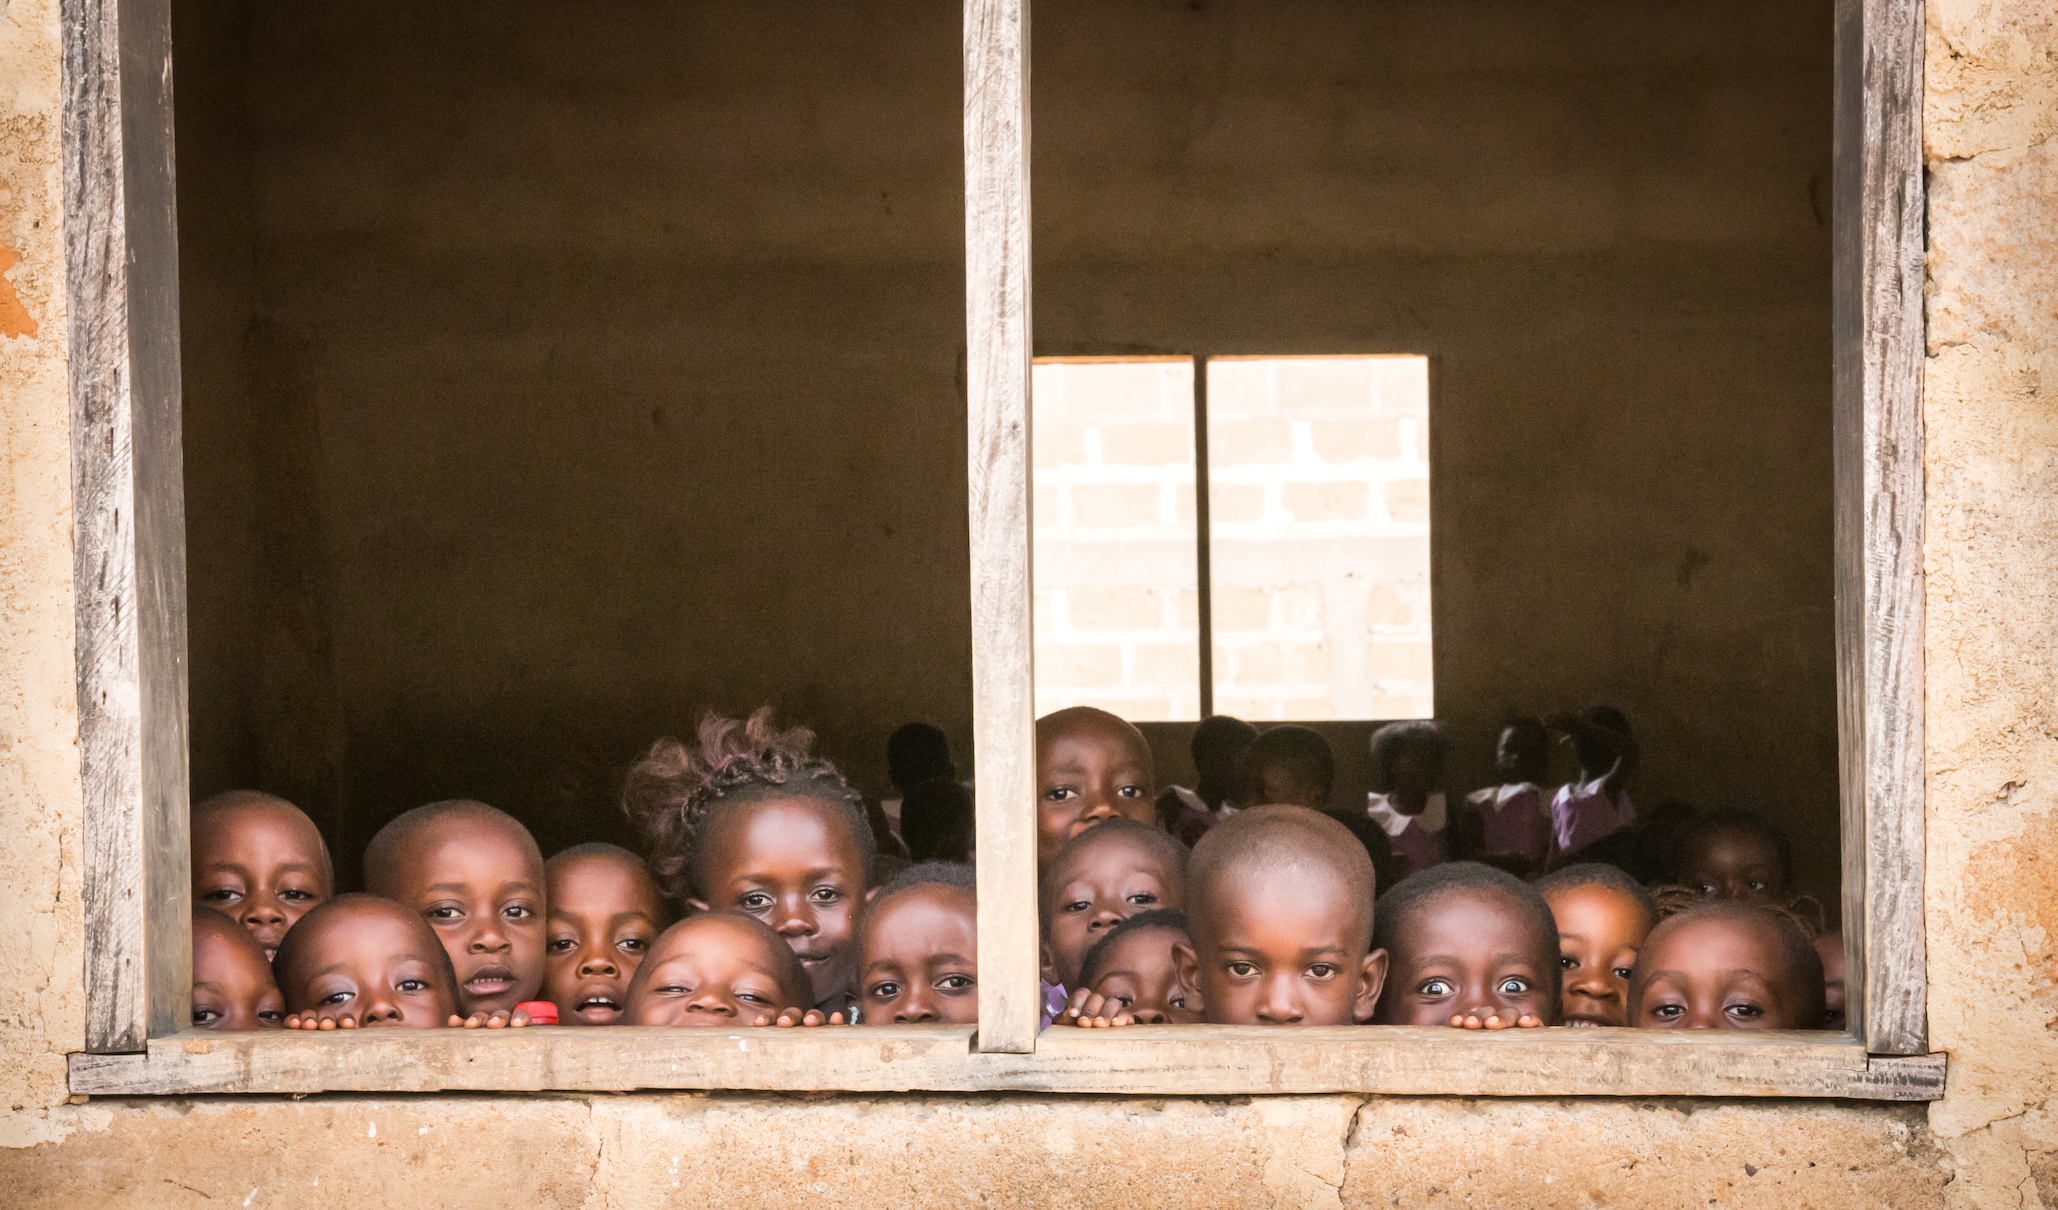 Photo by Rohit Lakhani on assignment for Ghana Health and Education Initiative